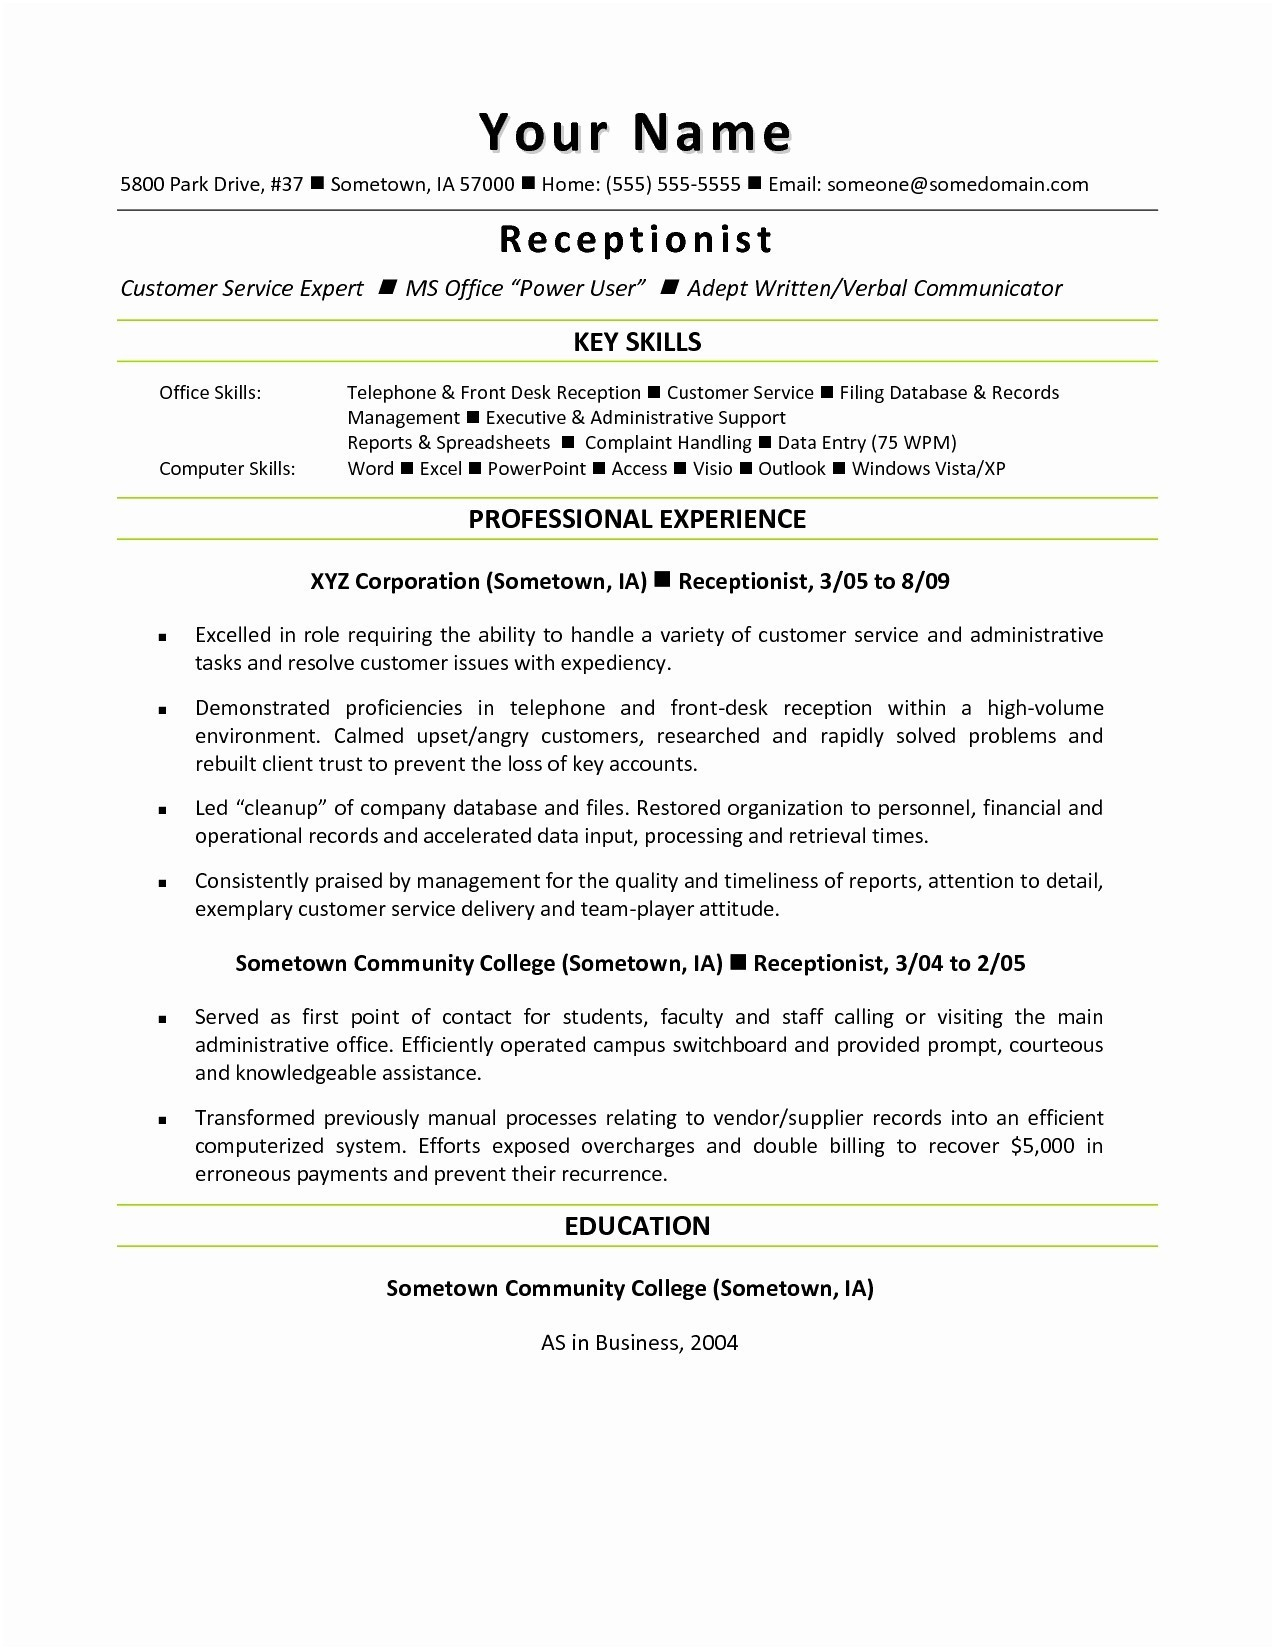 Resume Cover Letter Template Word - Resume Microsoft Word Fresh Resume Mail format Sample Fresh